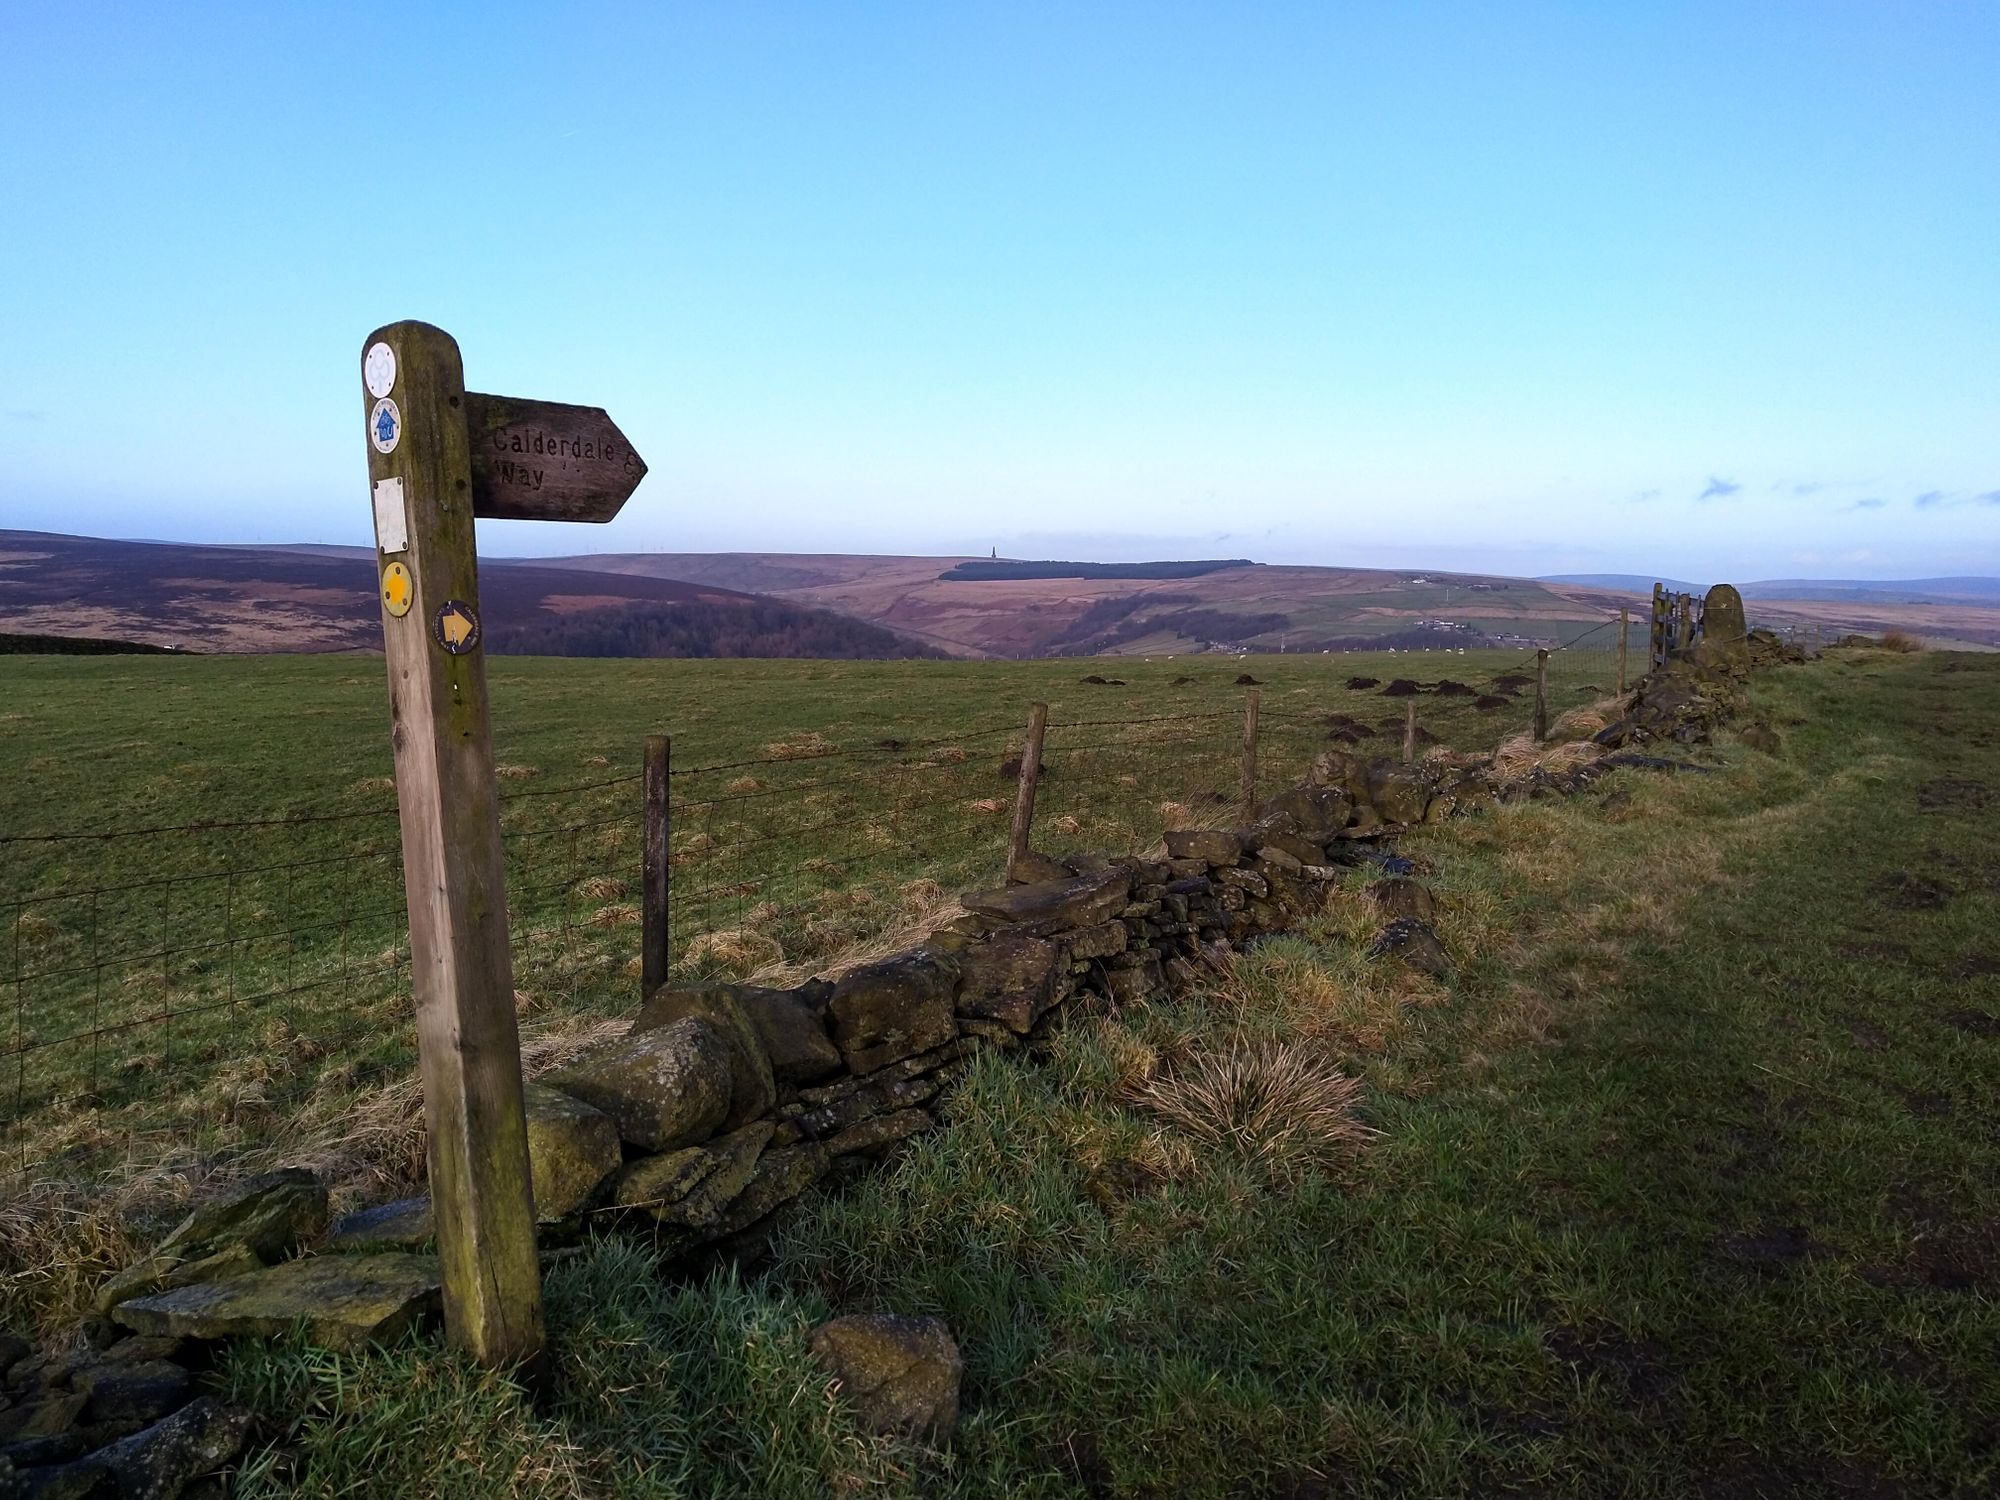 Calderdale Way footpath sign with Stoodley Pike monument in the distance